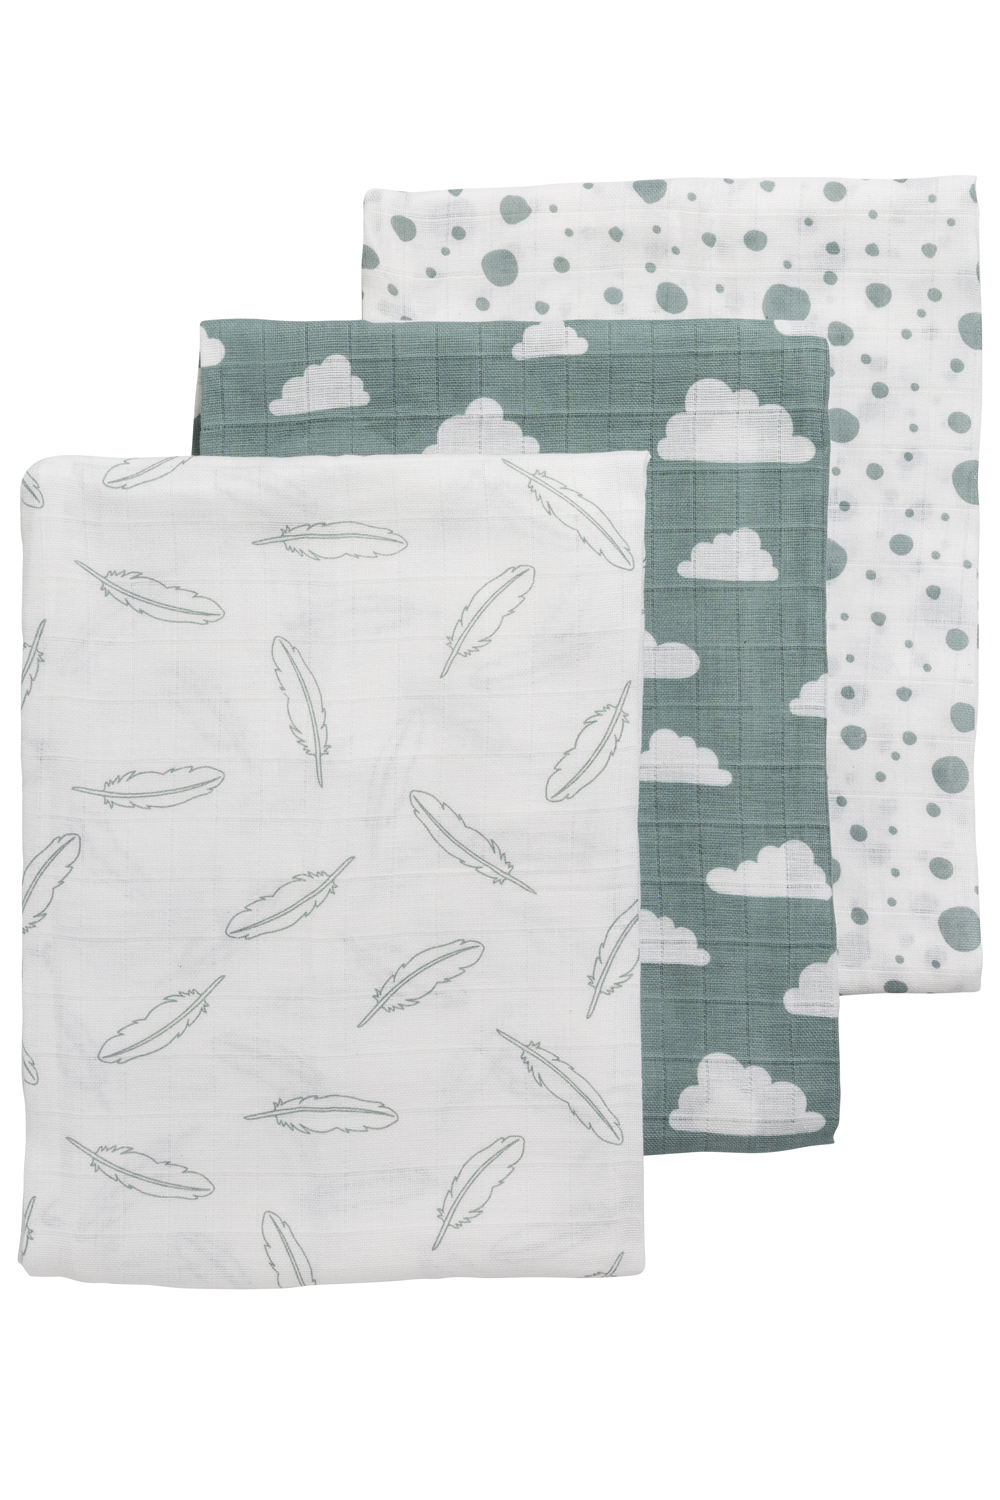 Hydrofiele Swaddles 3-Pack Feathers-Clouds-Dots - Stone Green/Wit - 120x120cm